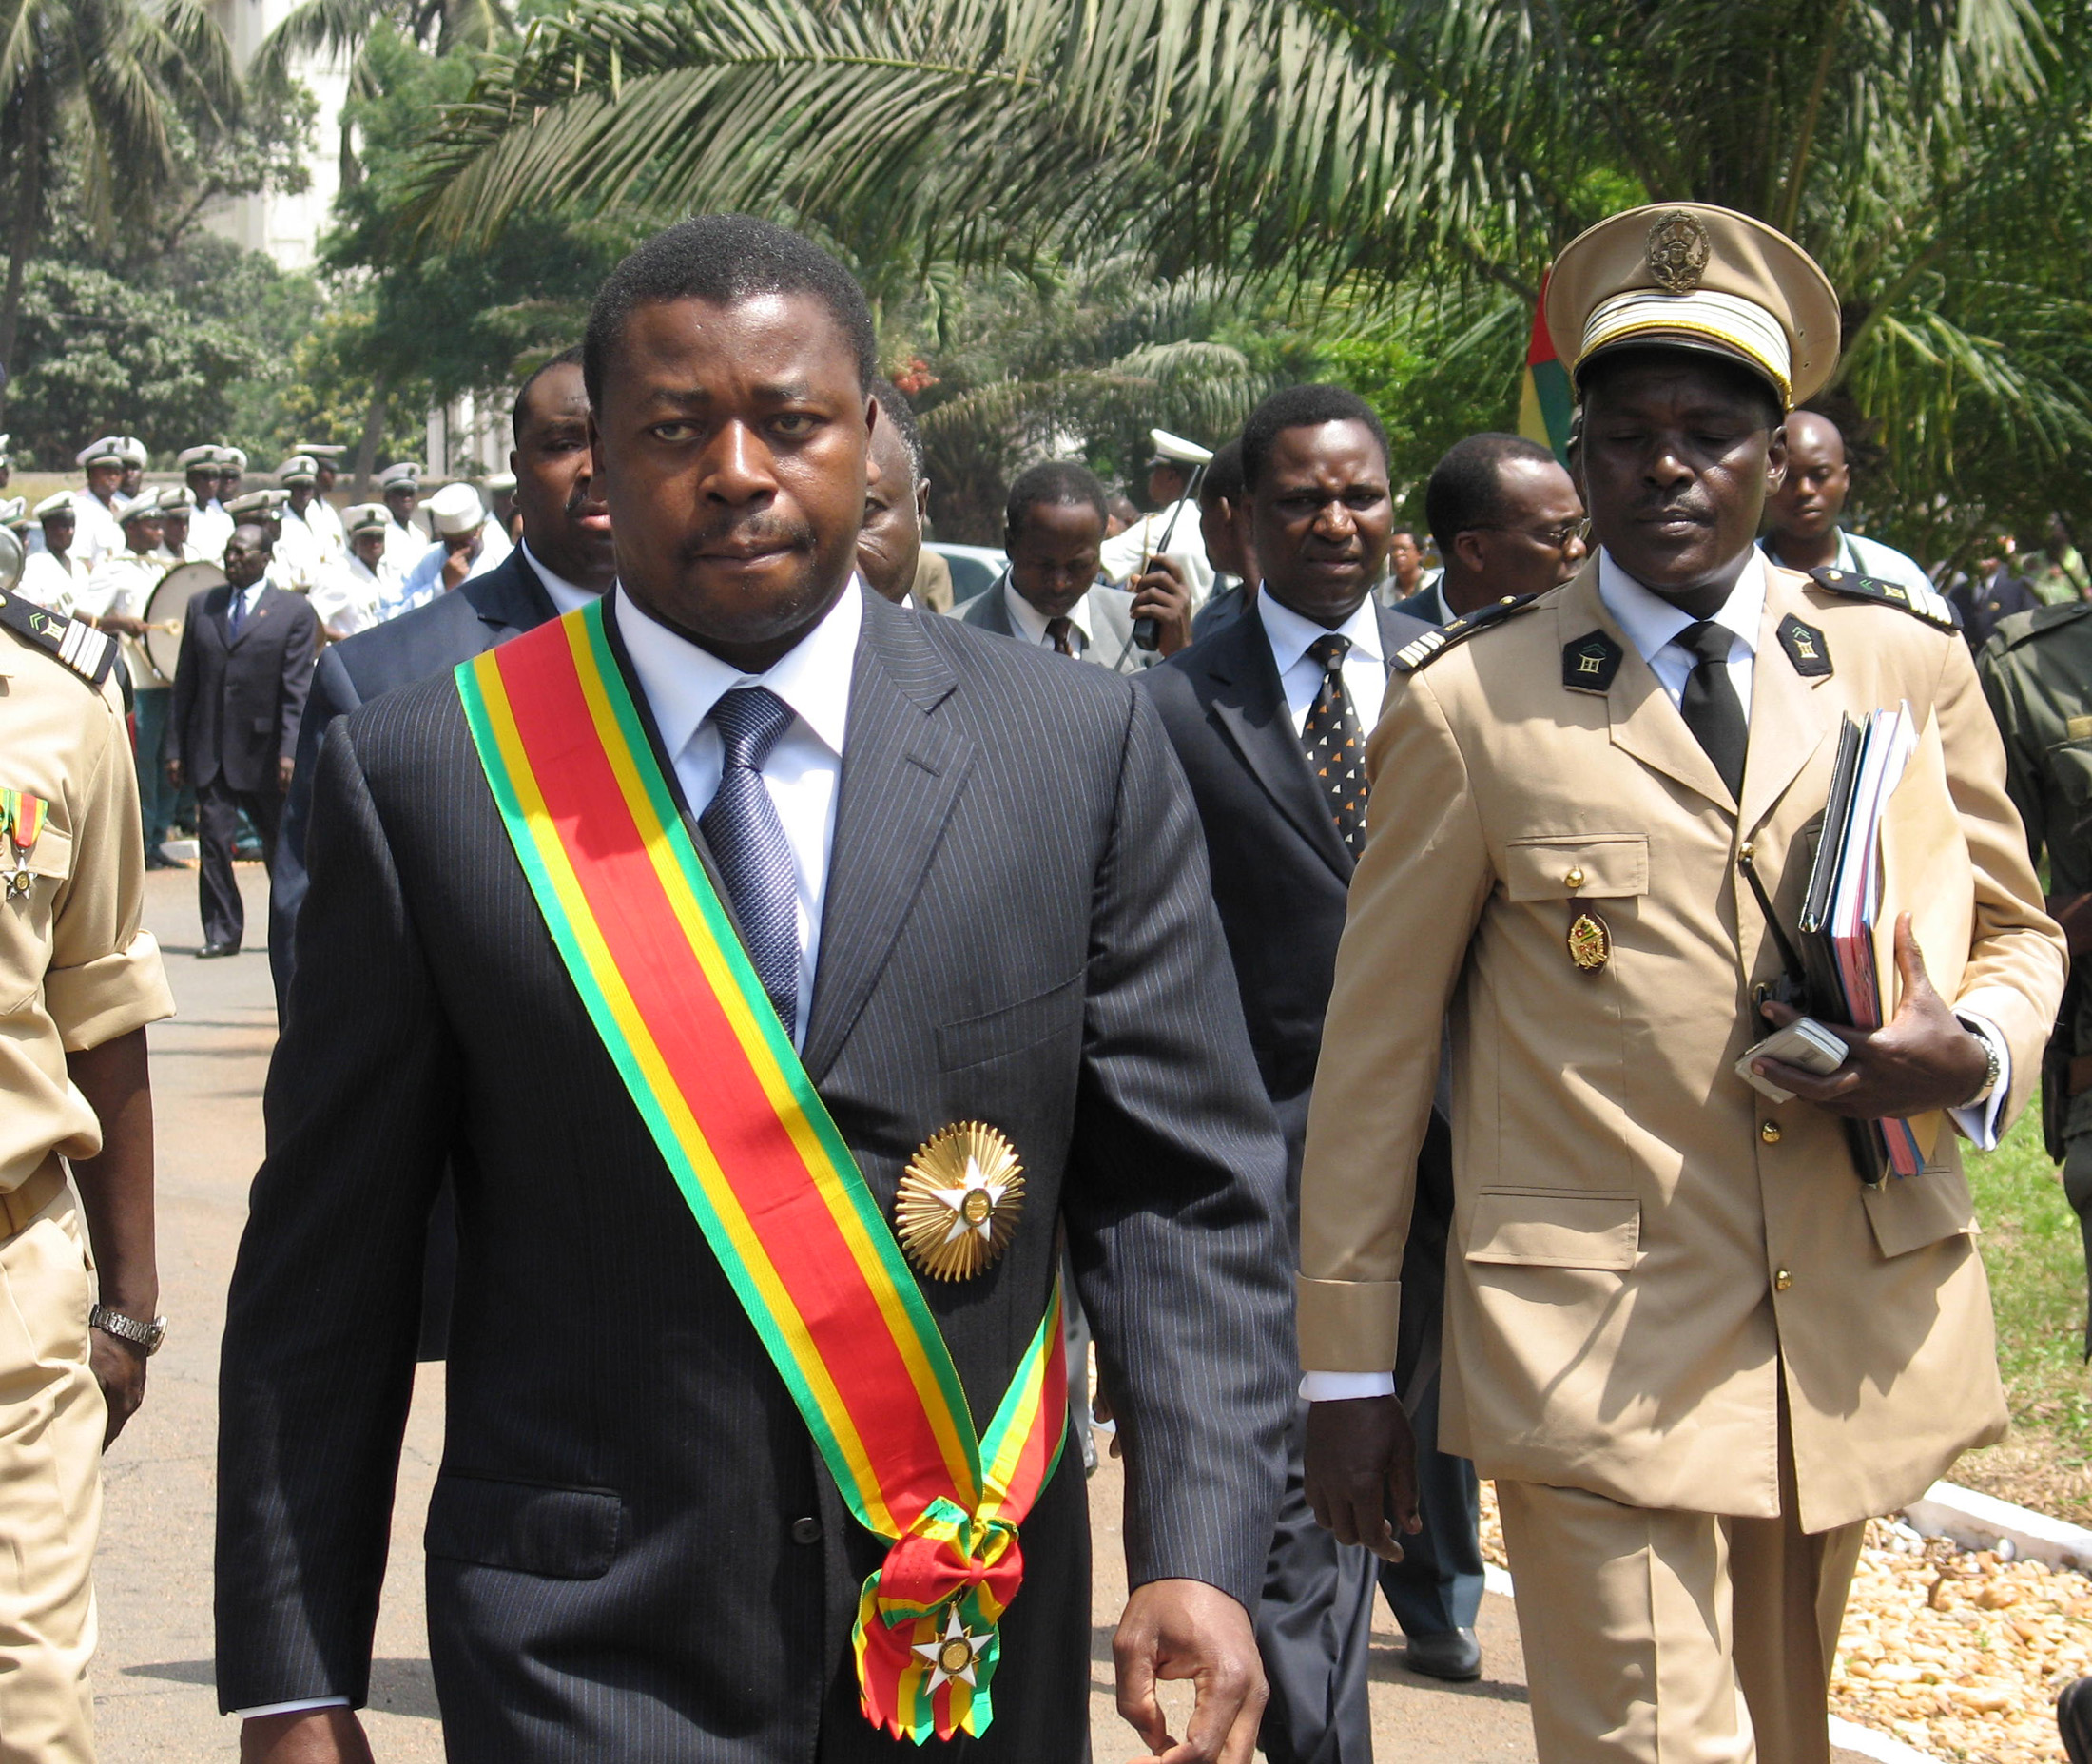 Faure Gnassingbe (L), the son of Togo's deceased president, was formally sworn in as President, in Lome, February 7, 2005, despite growing condemnation from African leaders who have denounced the swift succession as unconstitutional and called for elections. Gnassingbe took his oath of office in front of judges and lawmakers.  REUTERS/Noel Kokou Tadegnon - RTRMLZP